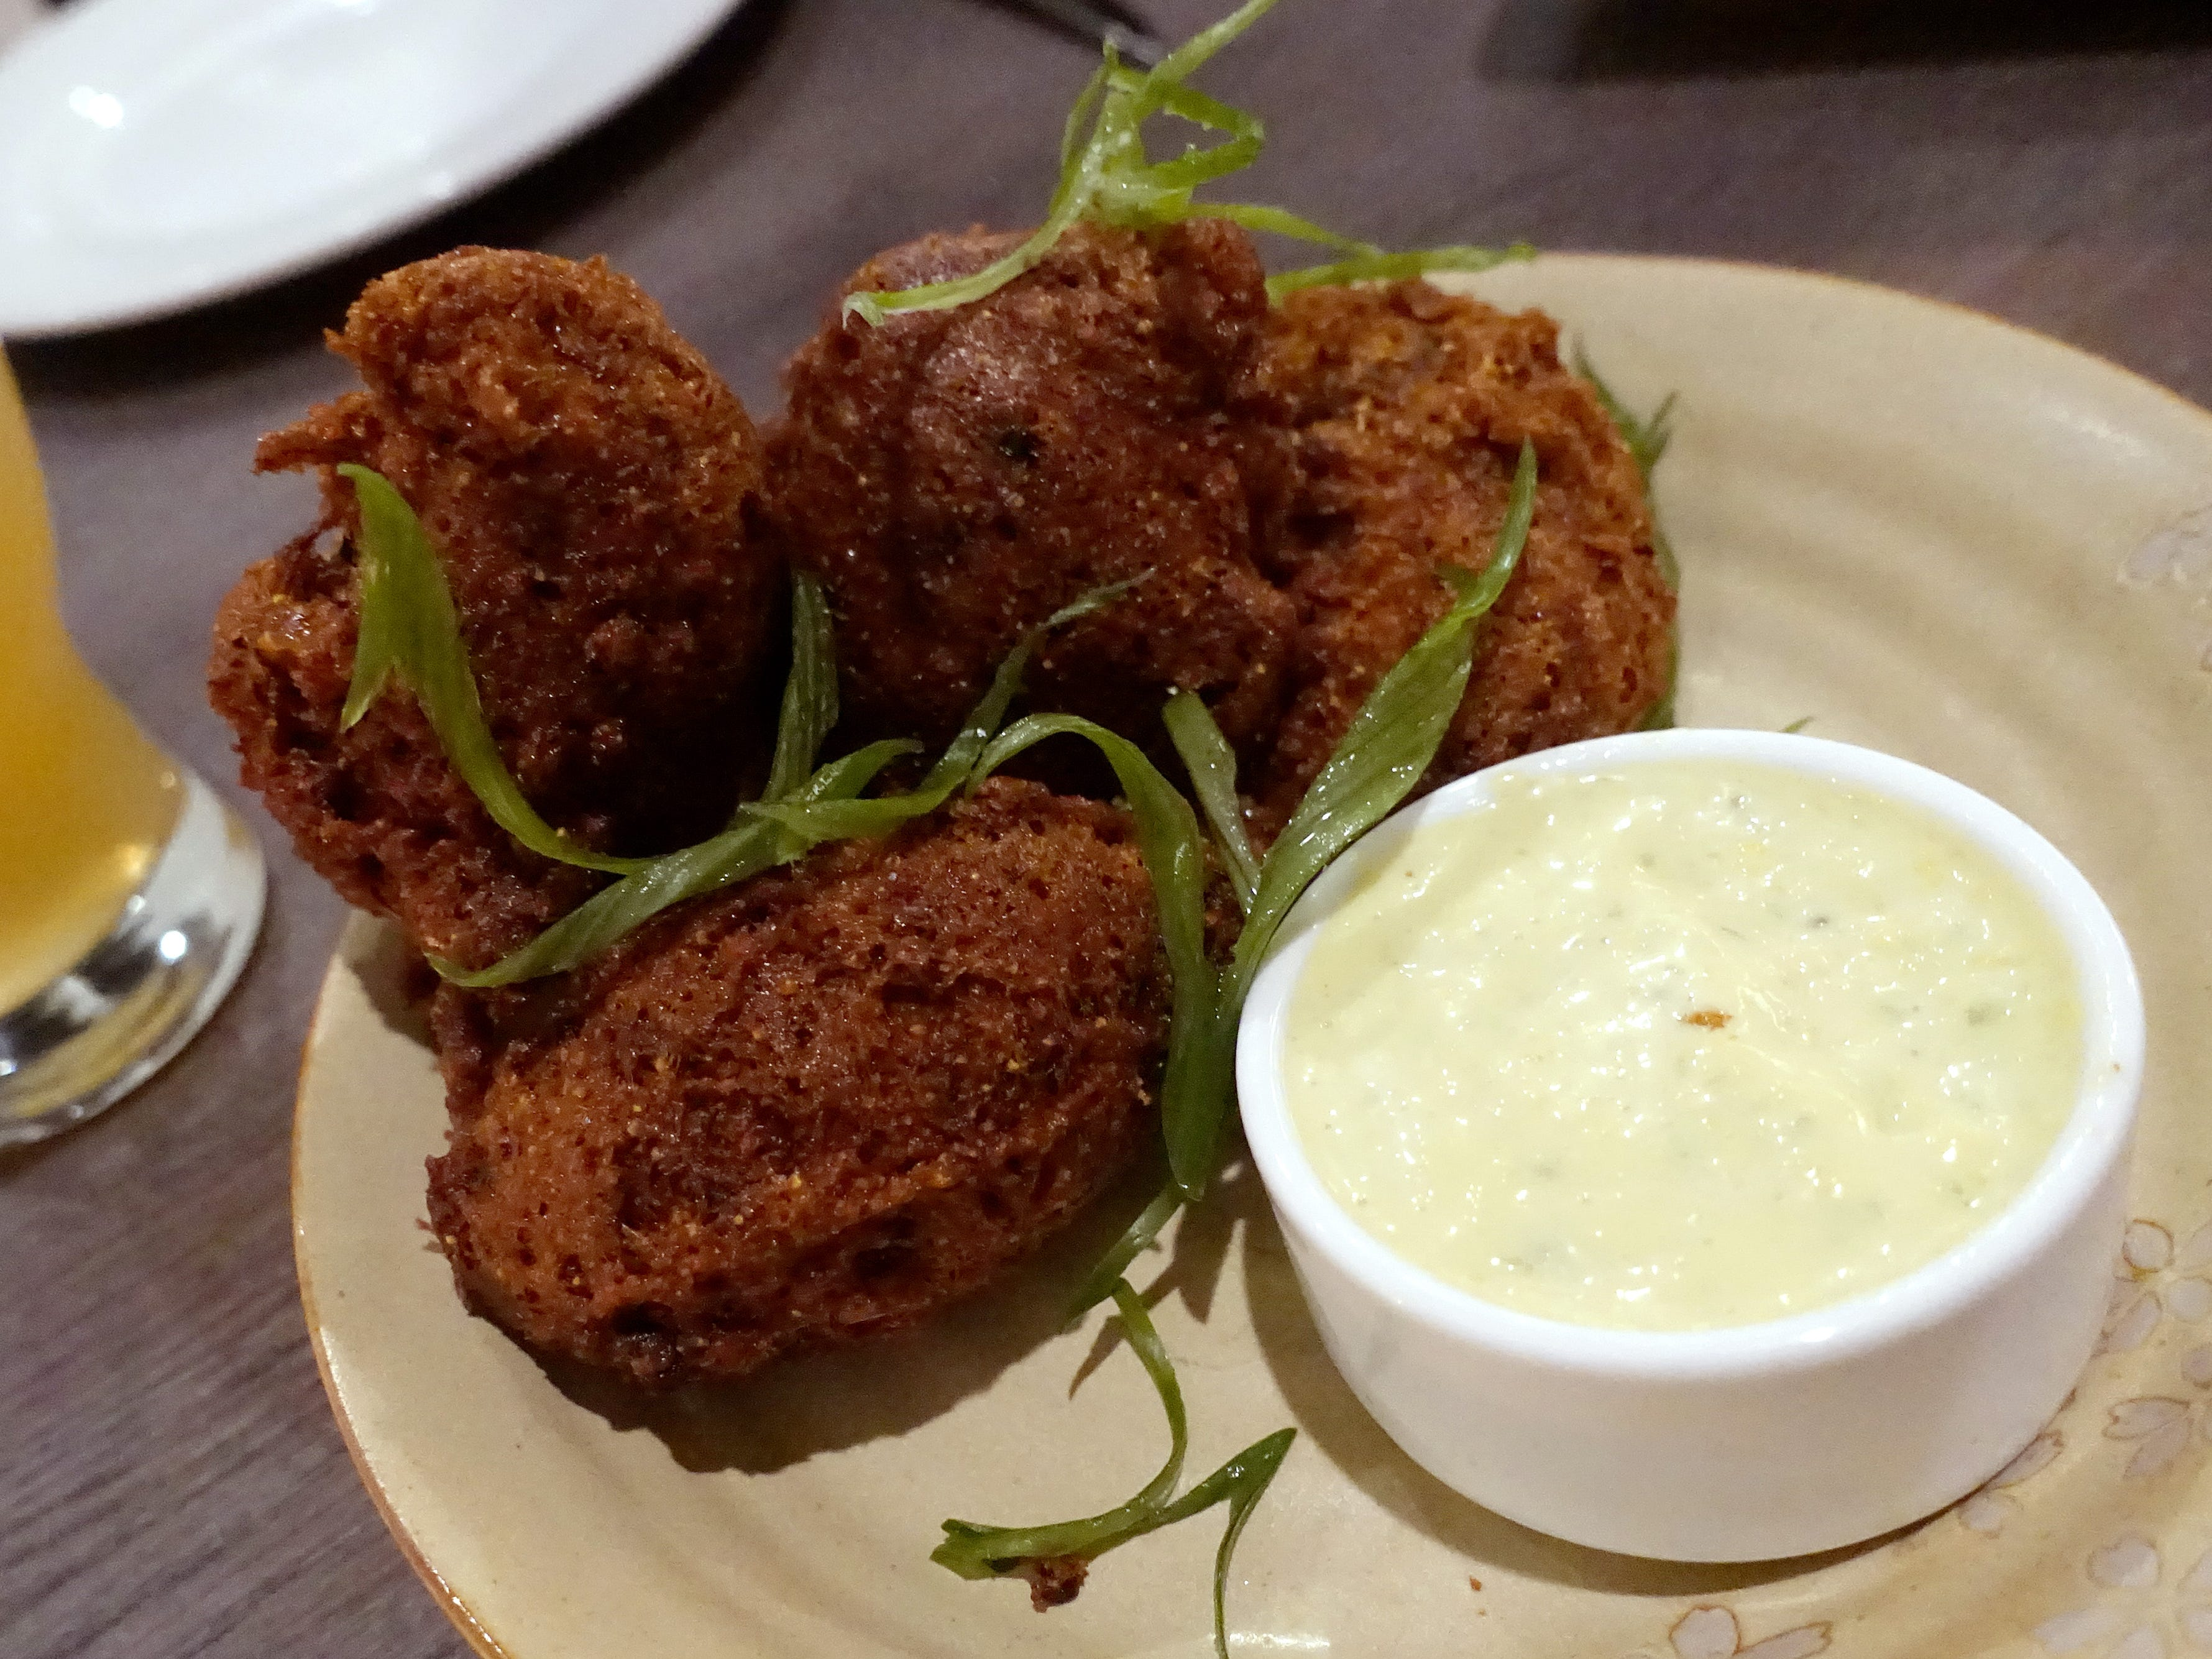 Crab hush puppies with sweet corn remoulade and scallions at Hush Public House in Scottsdale.